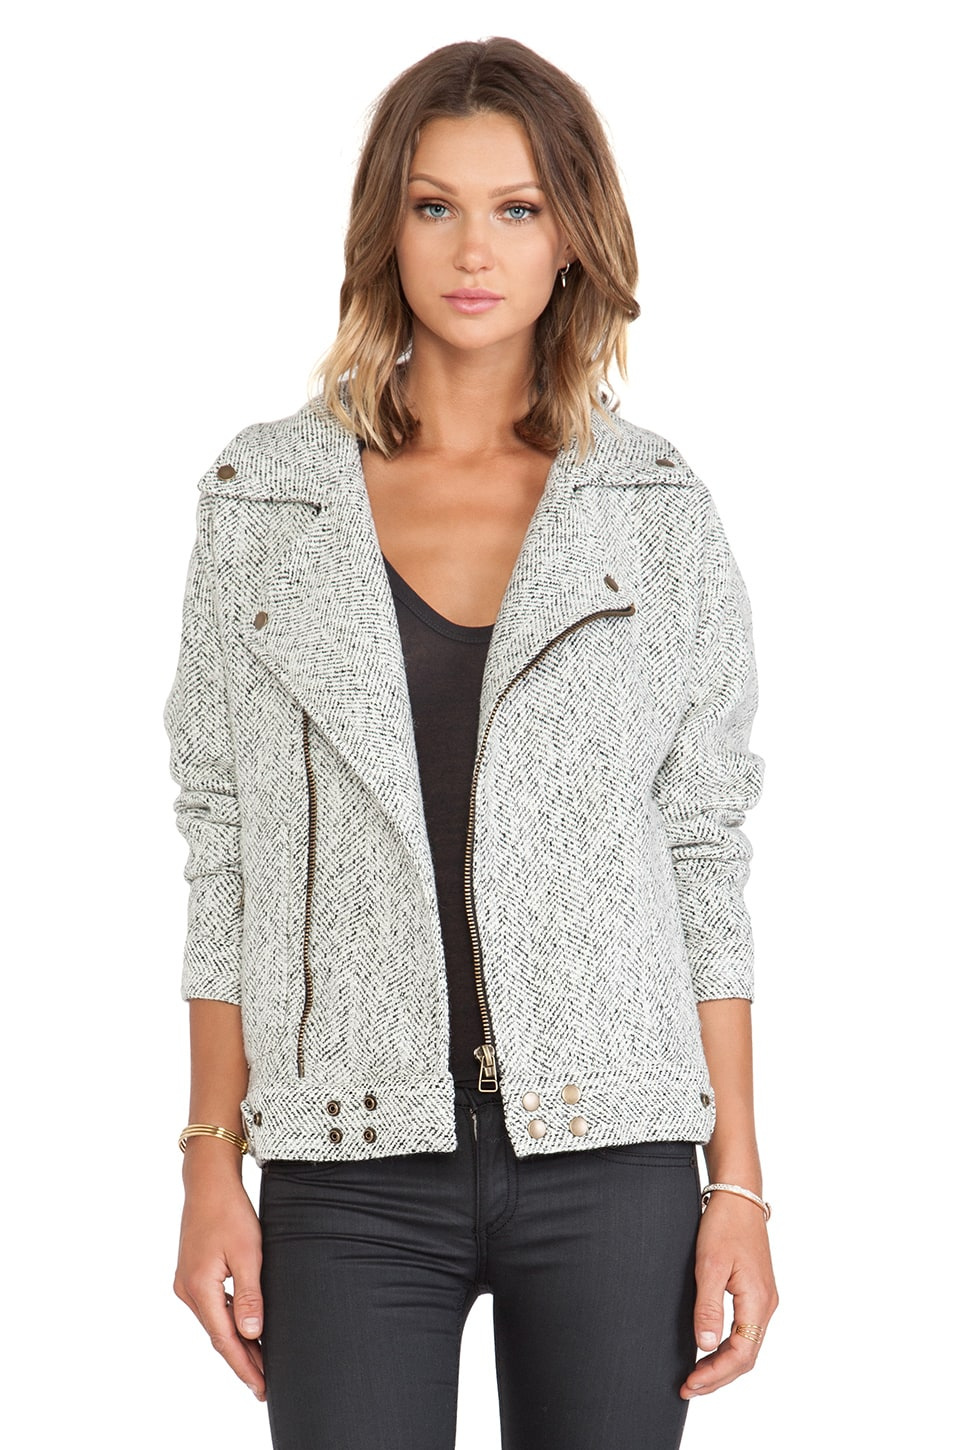 J.O.A. Biker Jacket in Ivory & Black